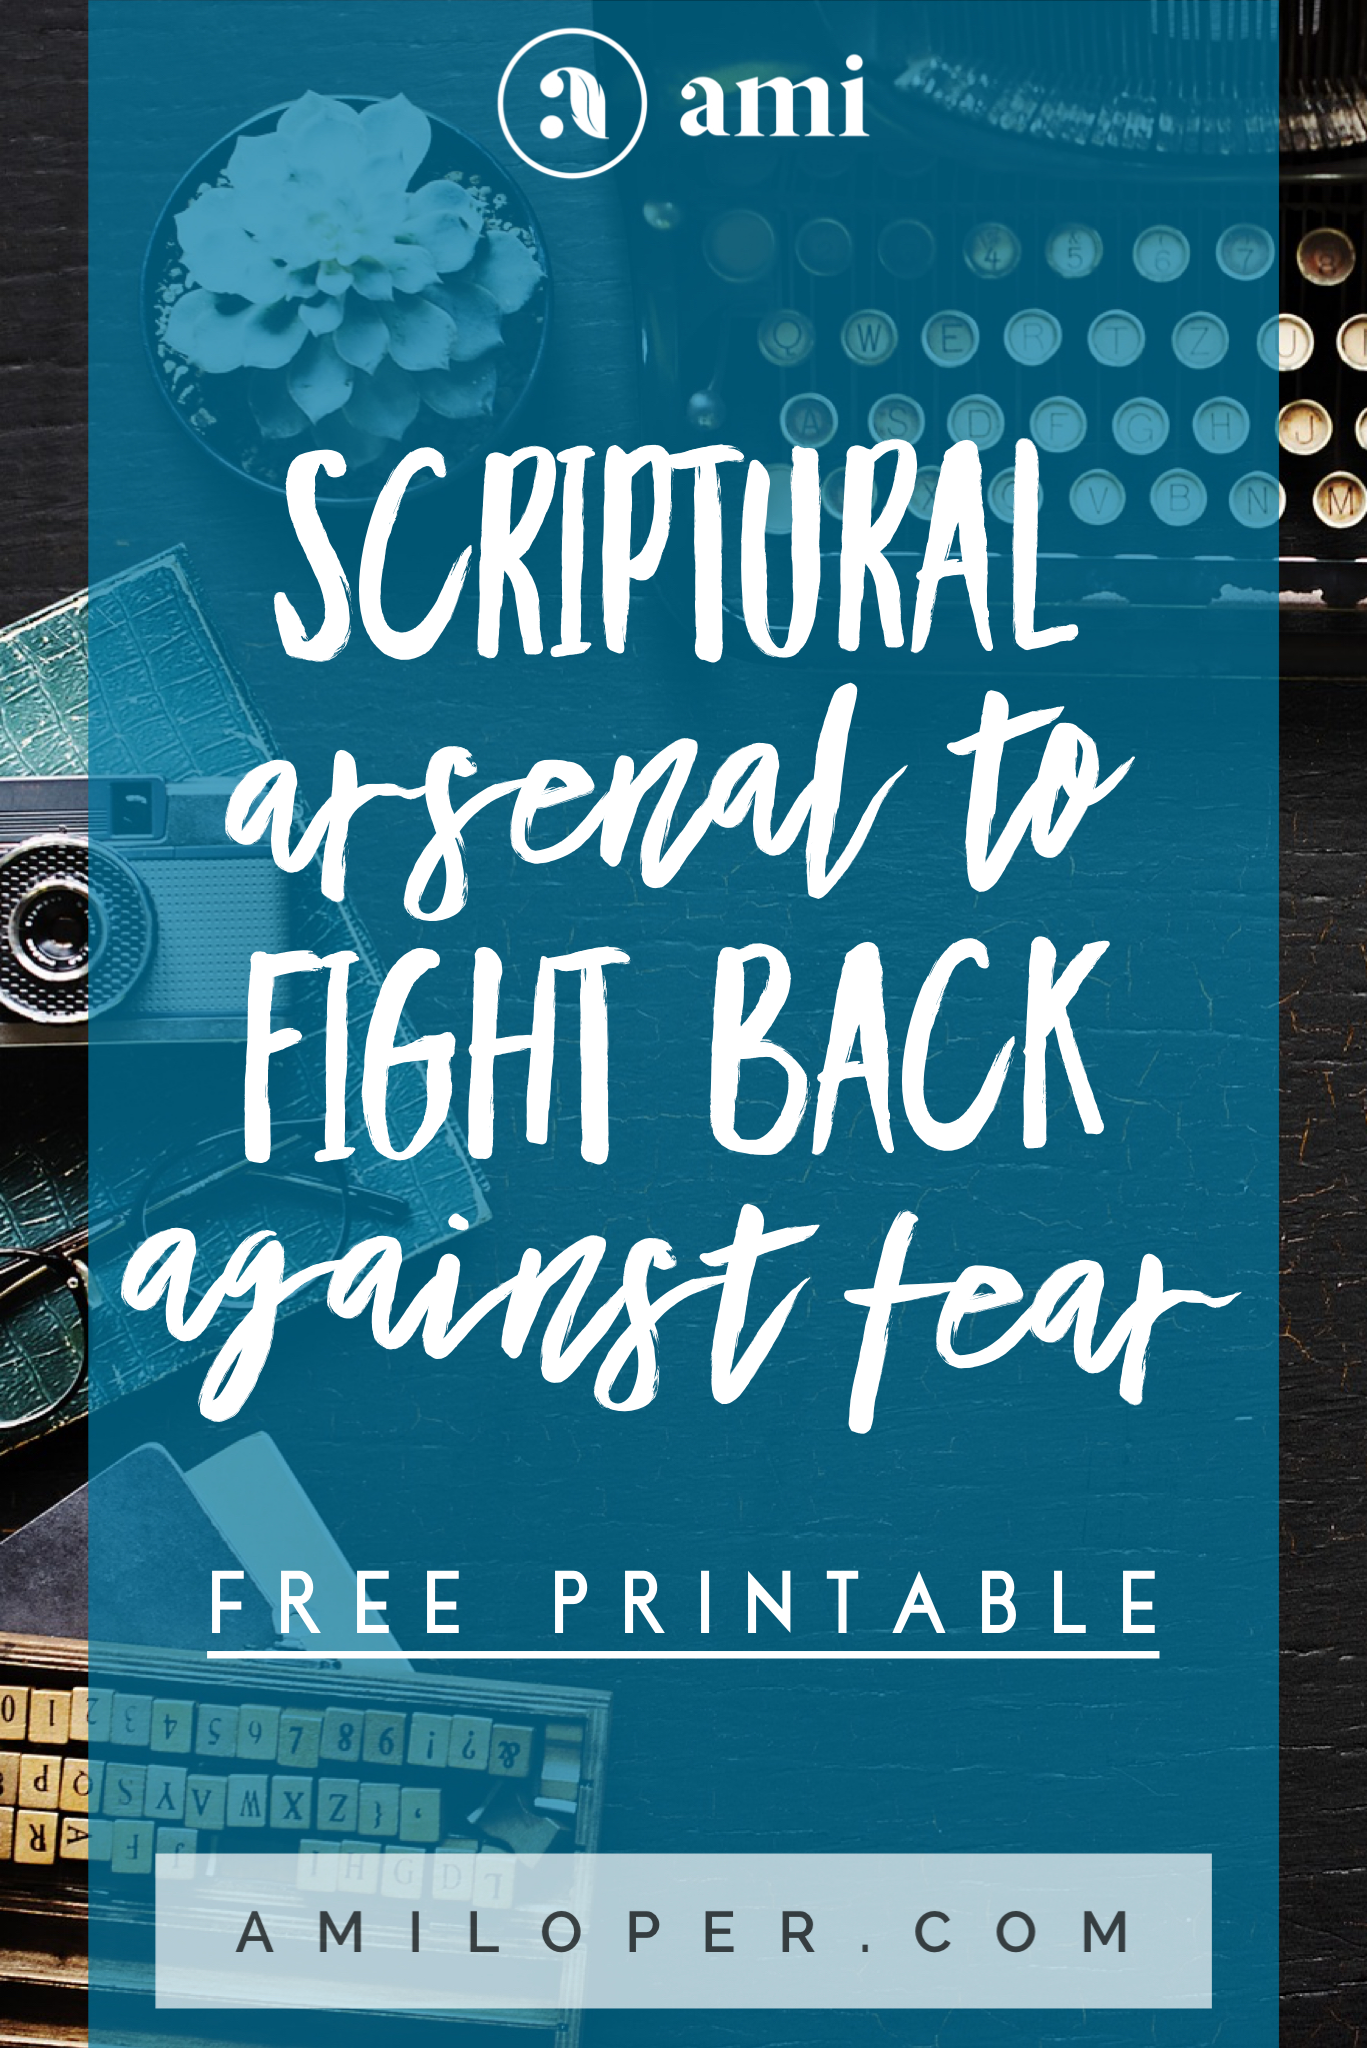 I used to be crippled by fear. Having been a fearful child, and then having been abused, threatened and stalked as a young adult, my filter saw everything through a lens of fear. But then a series of events began to expose the true nature of fear! Pick up the FREE PRINTABLE: Scriptural Arsenal to Fight Back Against Fear! Free to all my Subscribers! #FightingFear #FearAndFaith #FreePrintable #ScripturePrintable